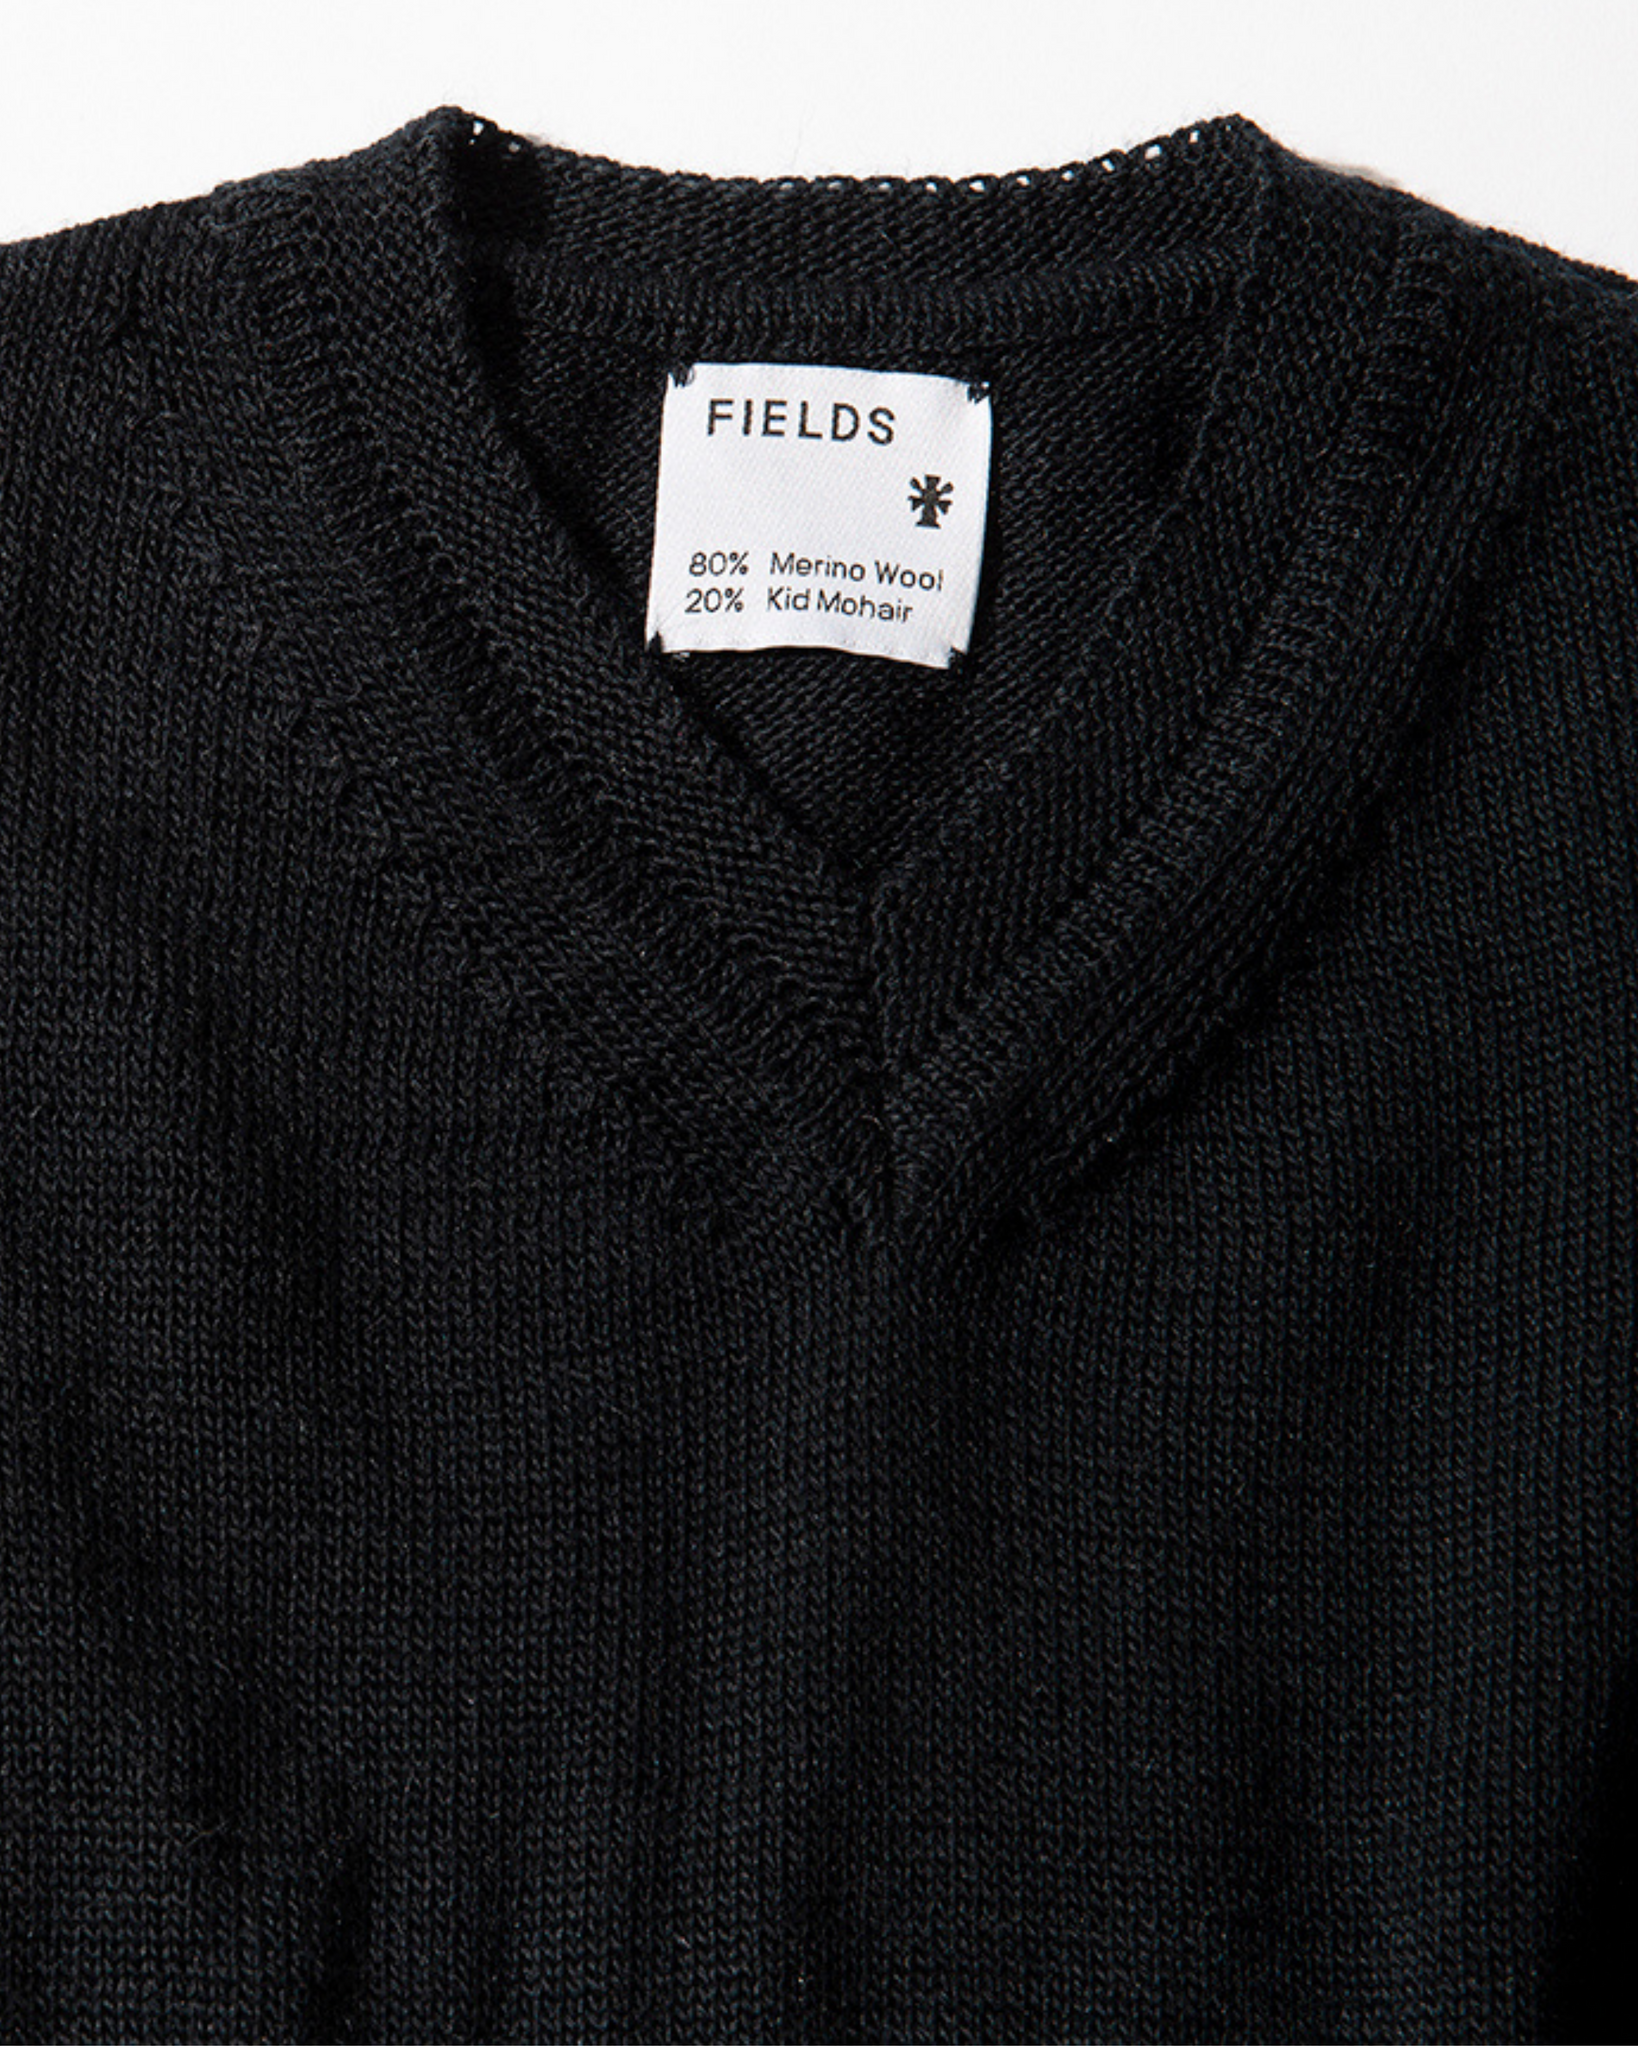 Wool & Mohair V-Neck Sweater - Black Beauty